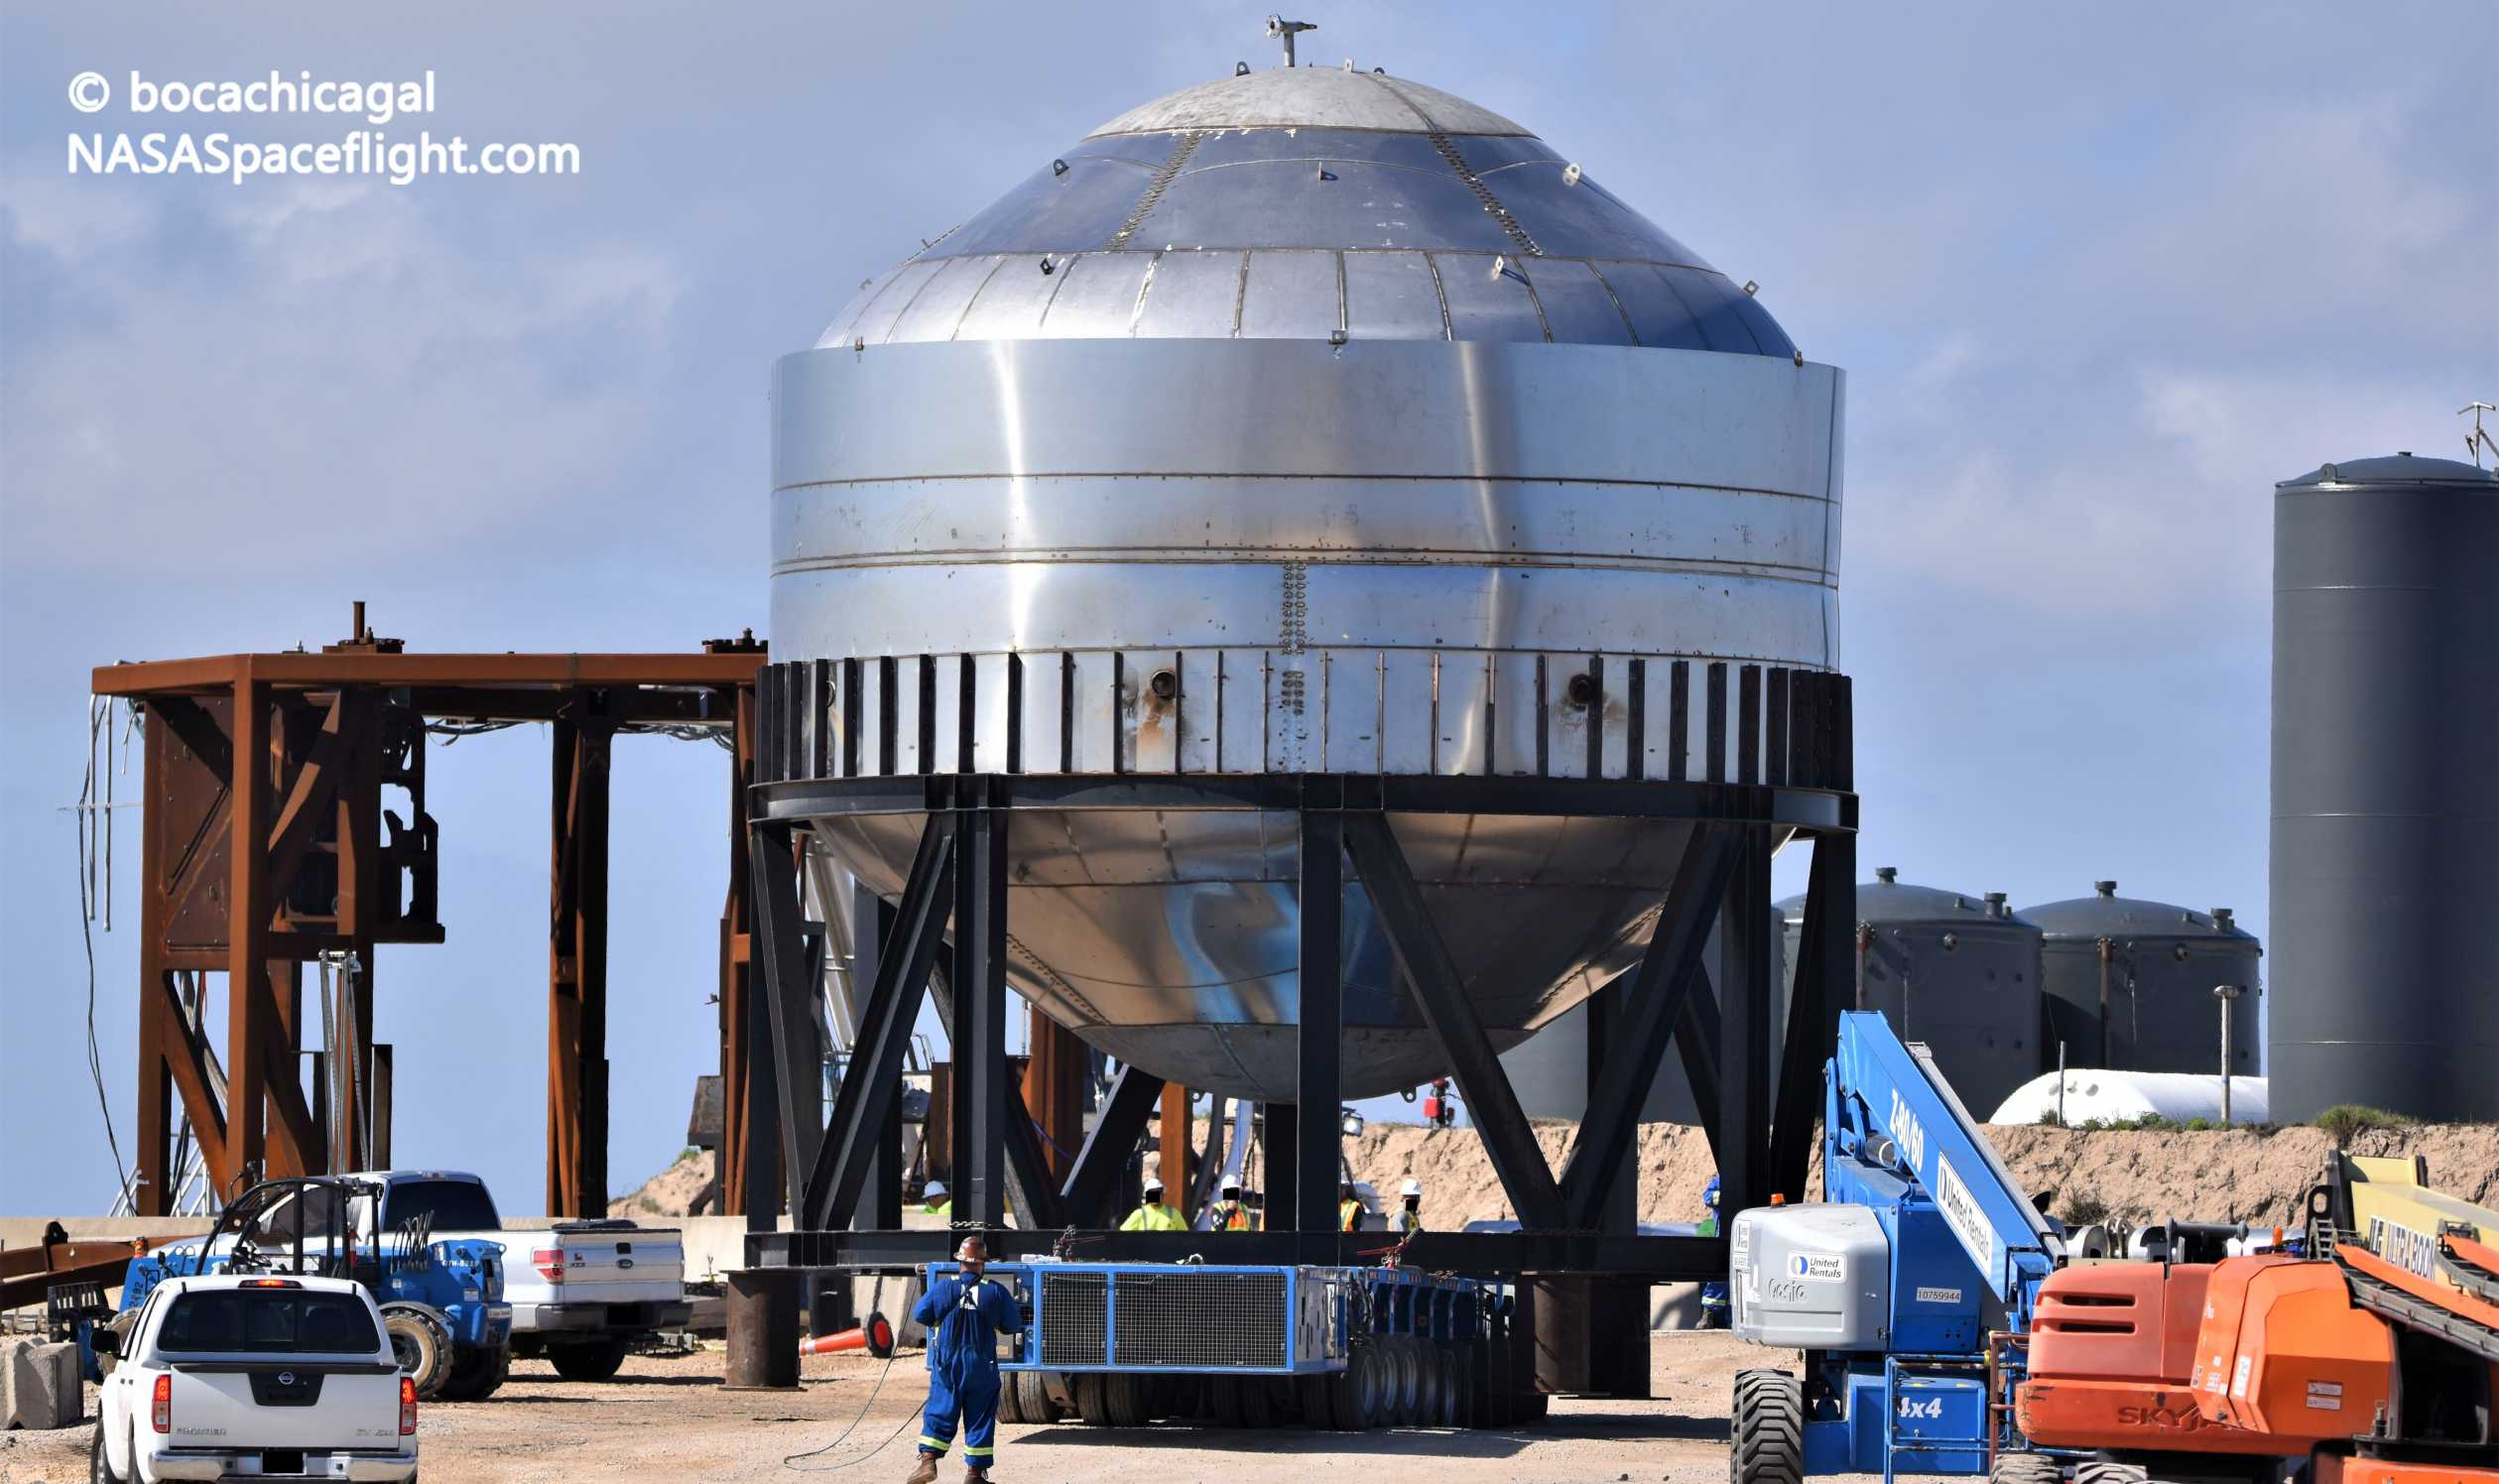 Starship Boca Chica 012720 (NASASpaceflight – bocachicagal) test tank #2 transport 6 crop (c)